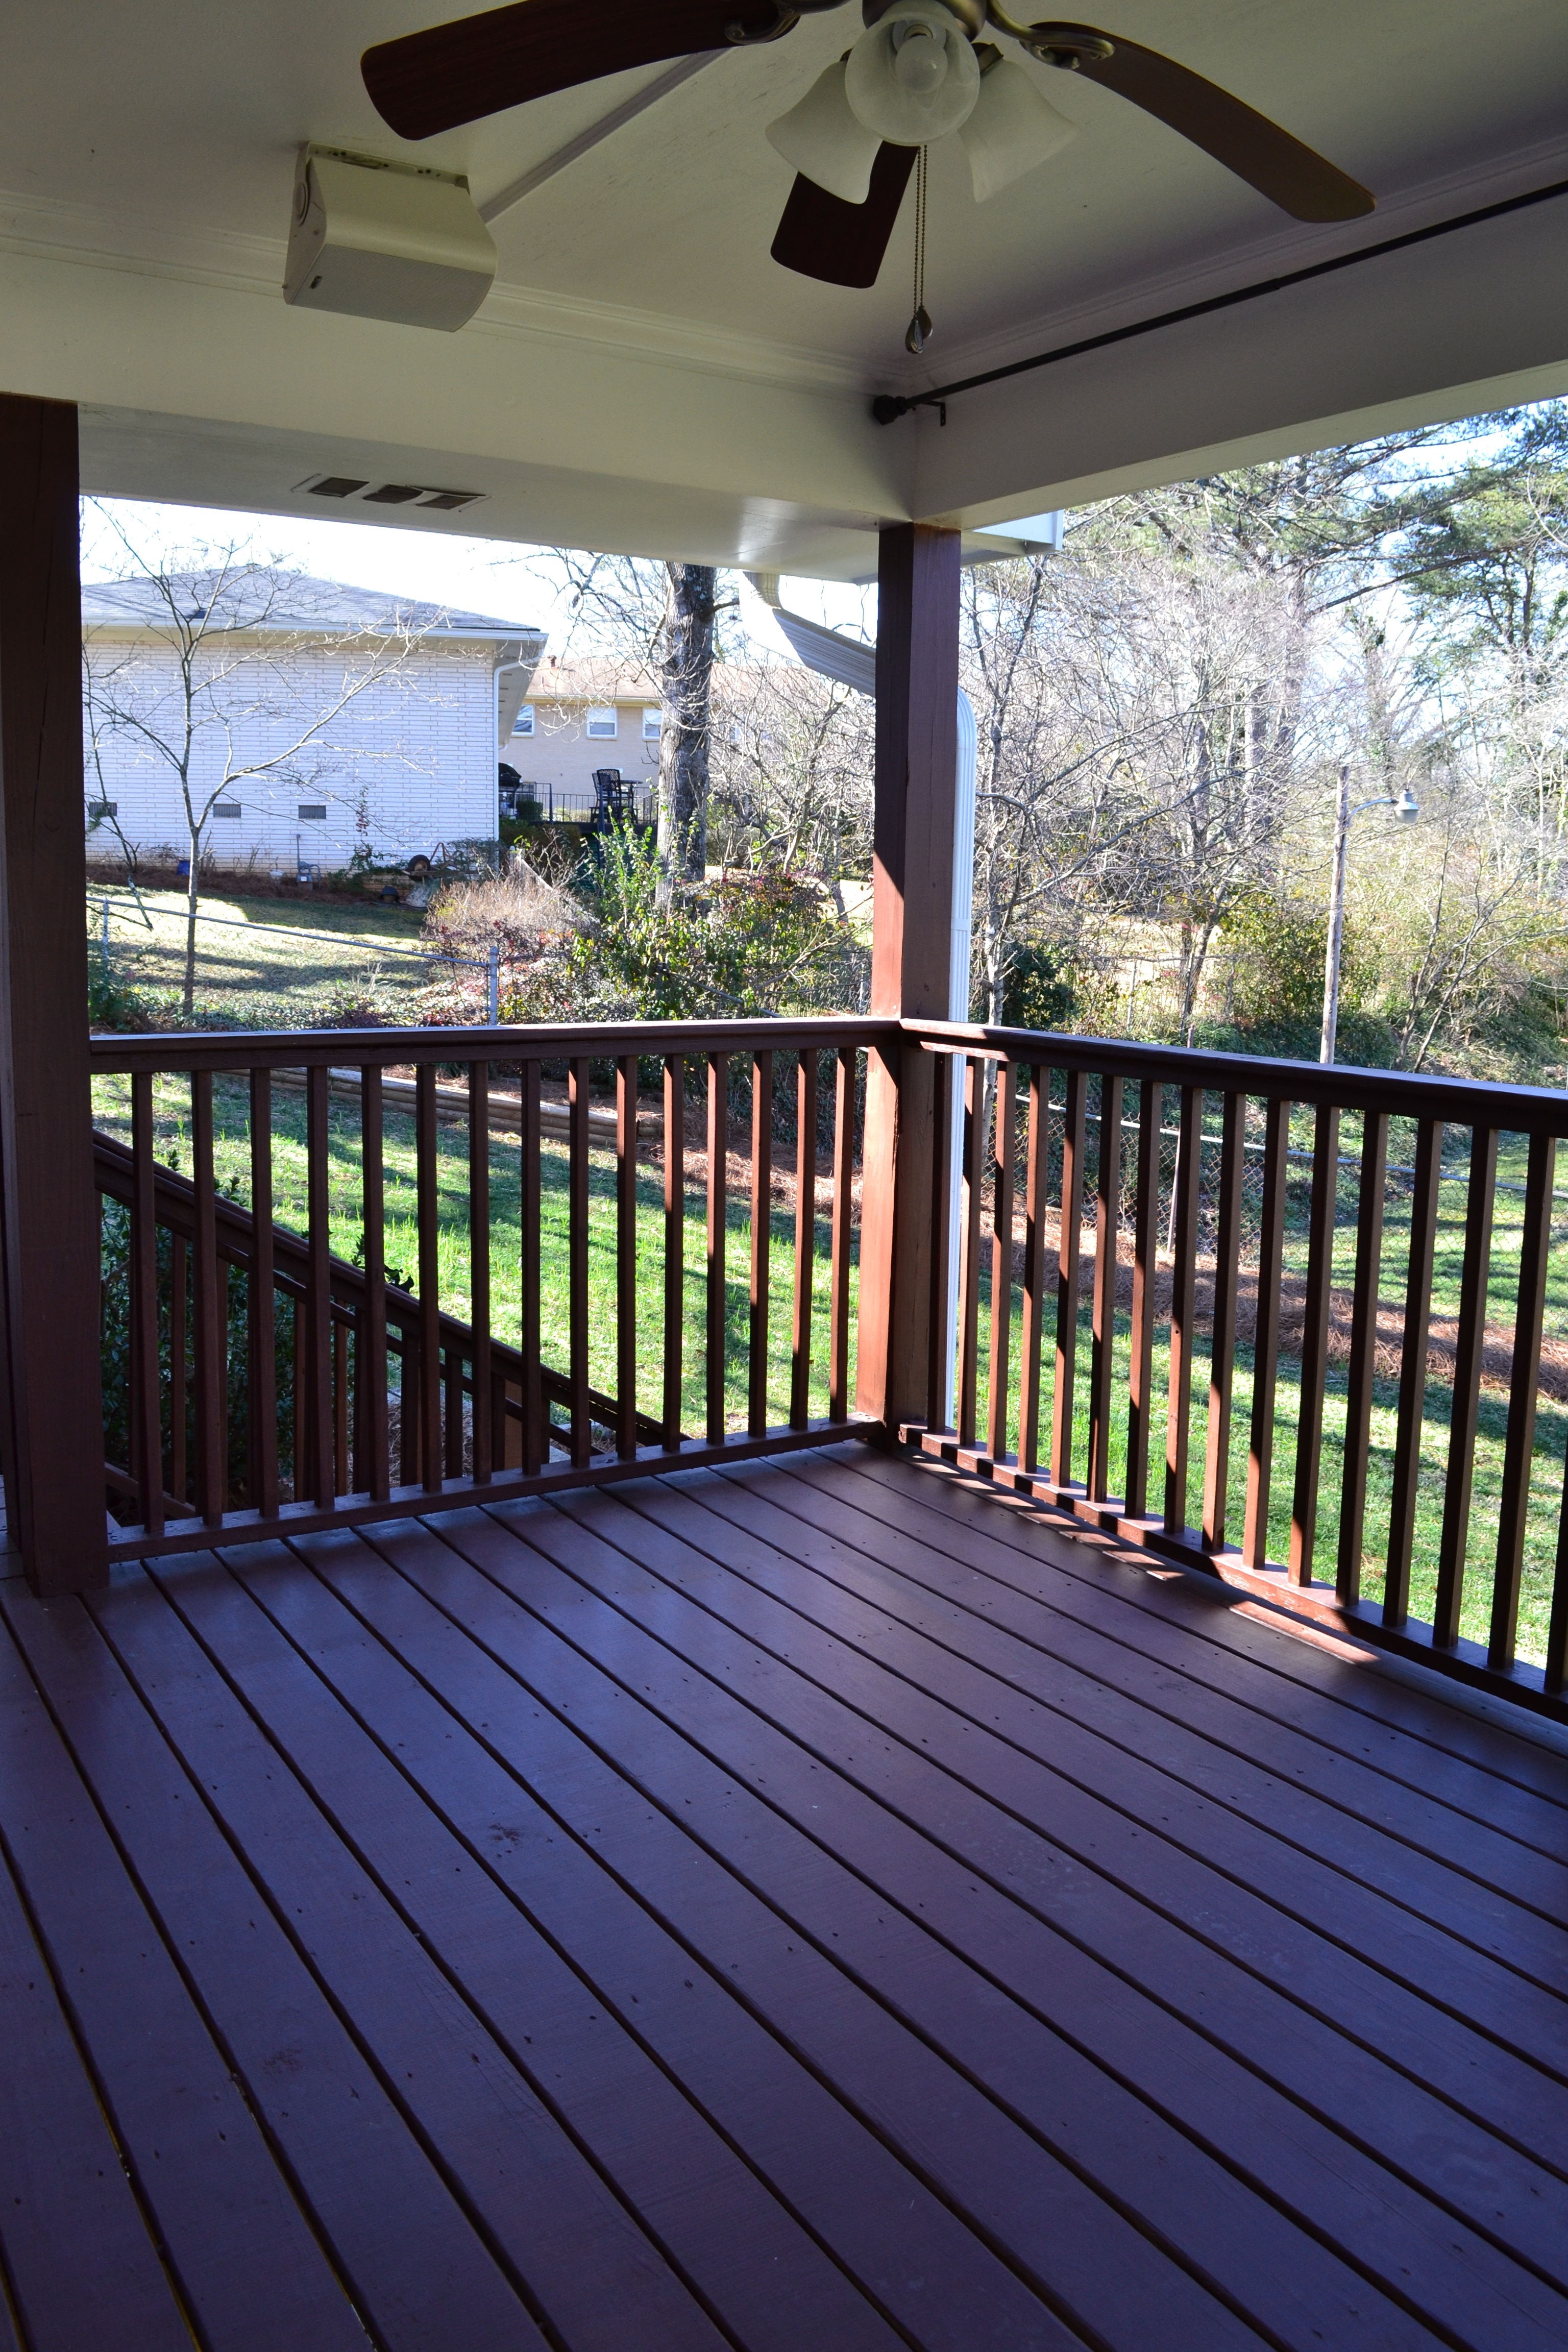 New Covered Deck With Ceiling Fan And Outdoor Speakers – Vision Pertaining To Most Current Outdoor Ceiling Fans For Decks (Gallery 5 of 20)